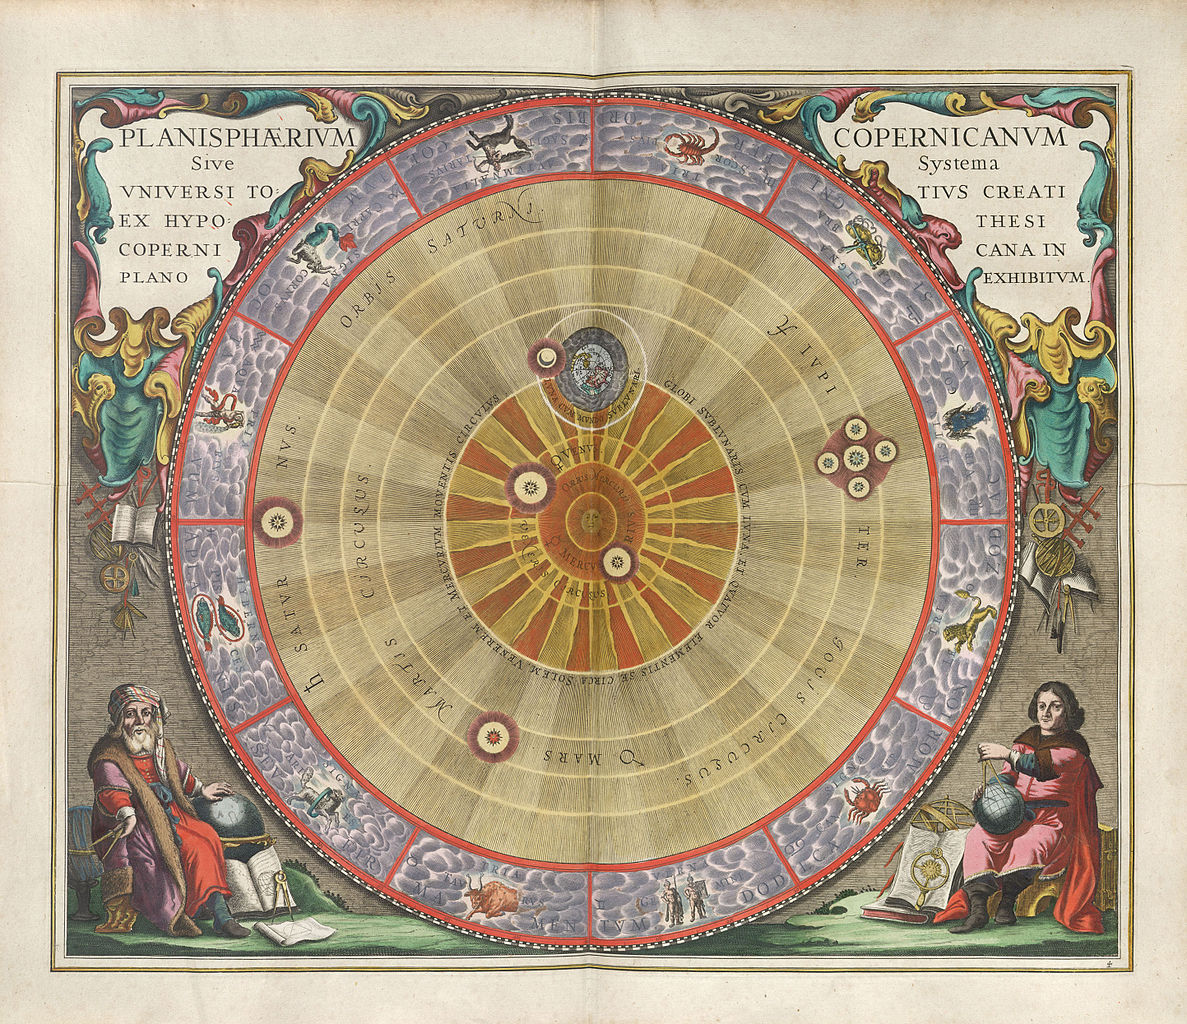 Going Bananas: The Real Story of Kepler, Copernicus and the Church